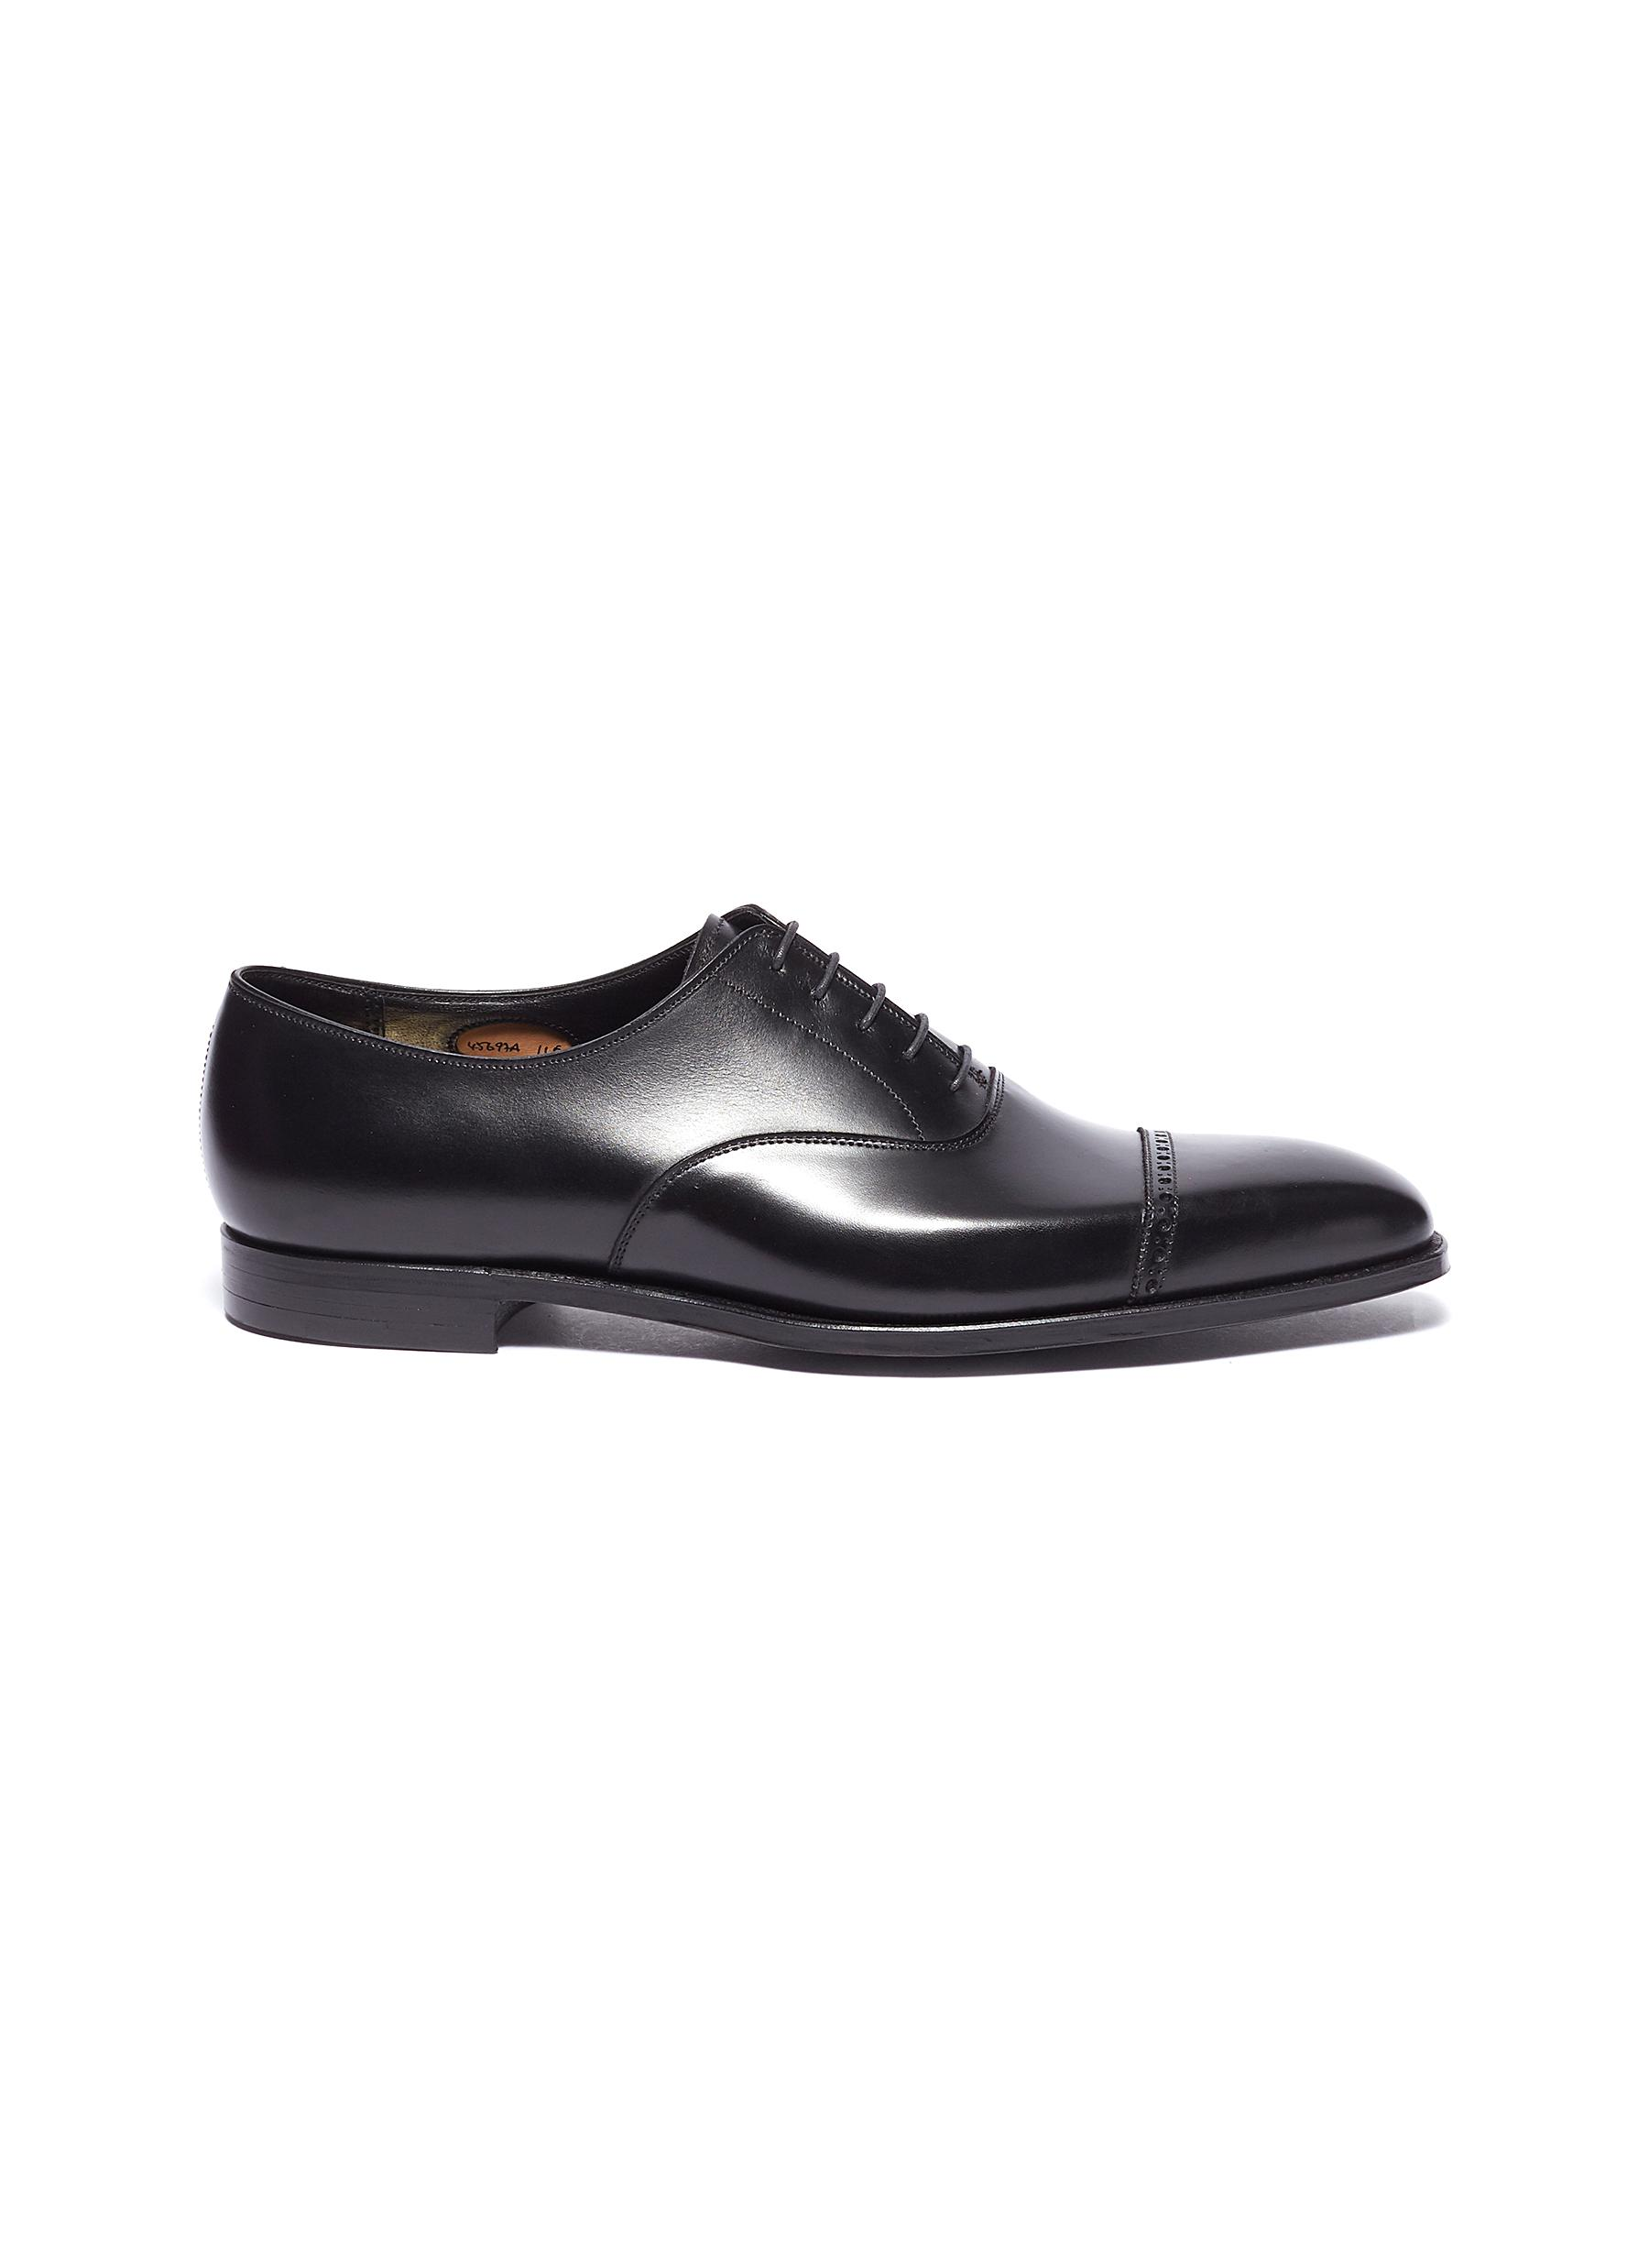 'Charles' leather Oxfords